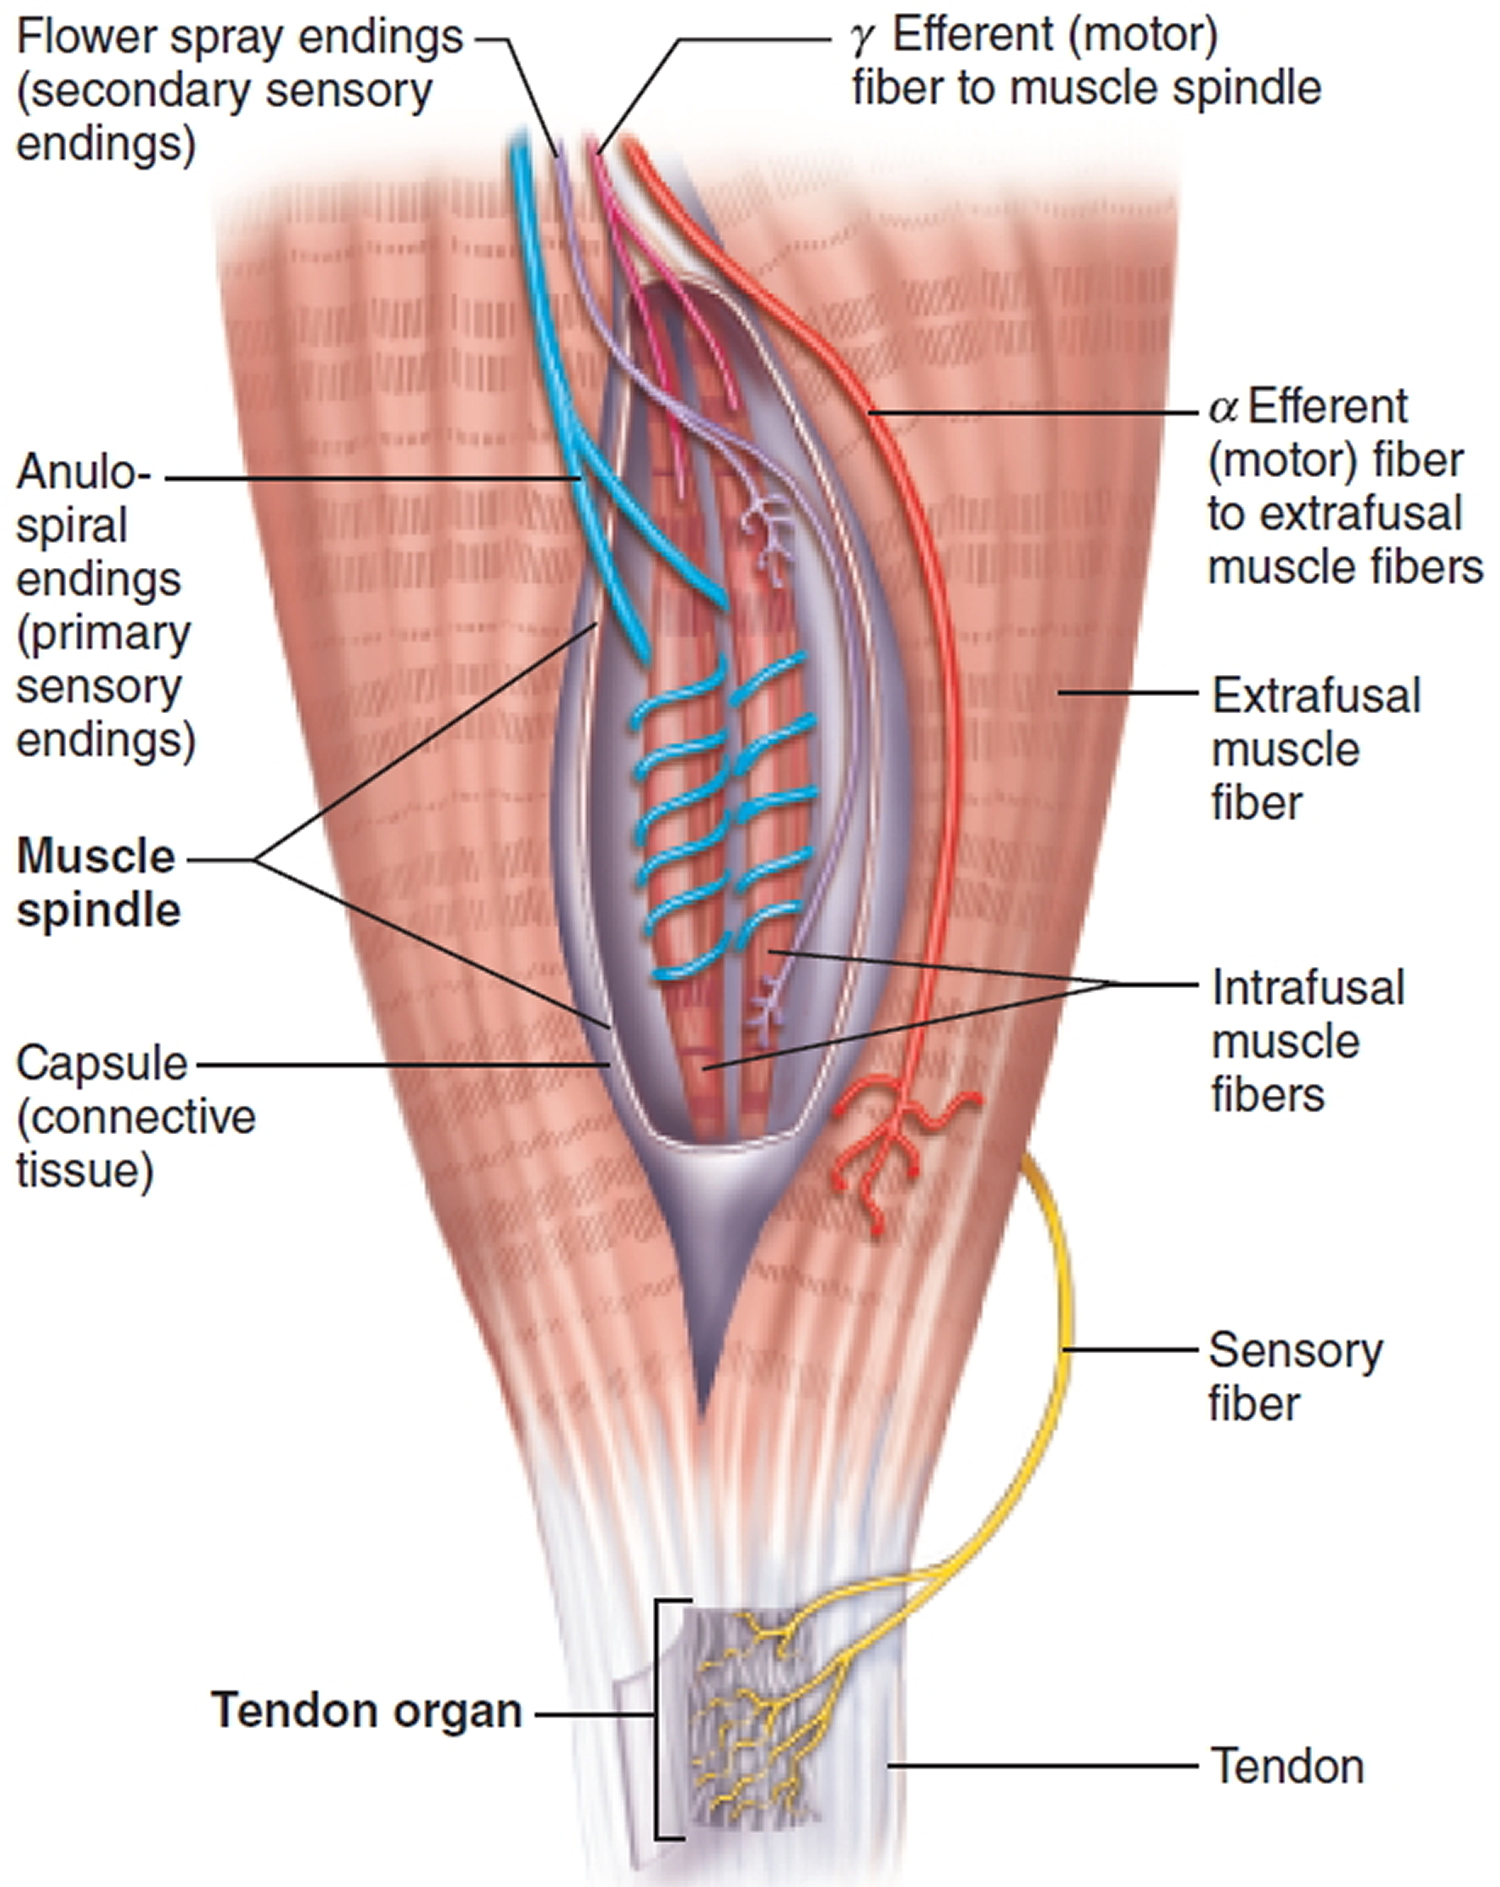 muscle spindle proprioceptors